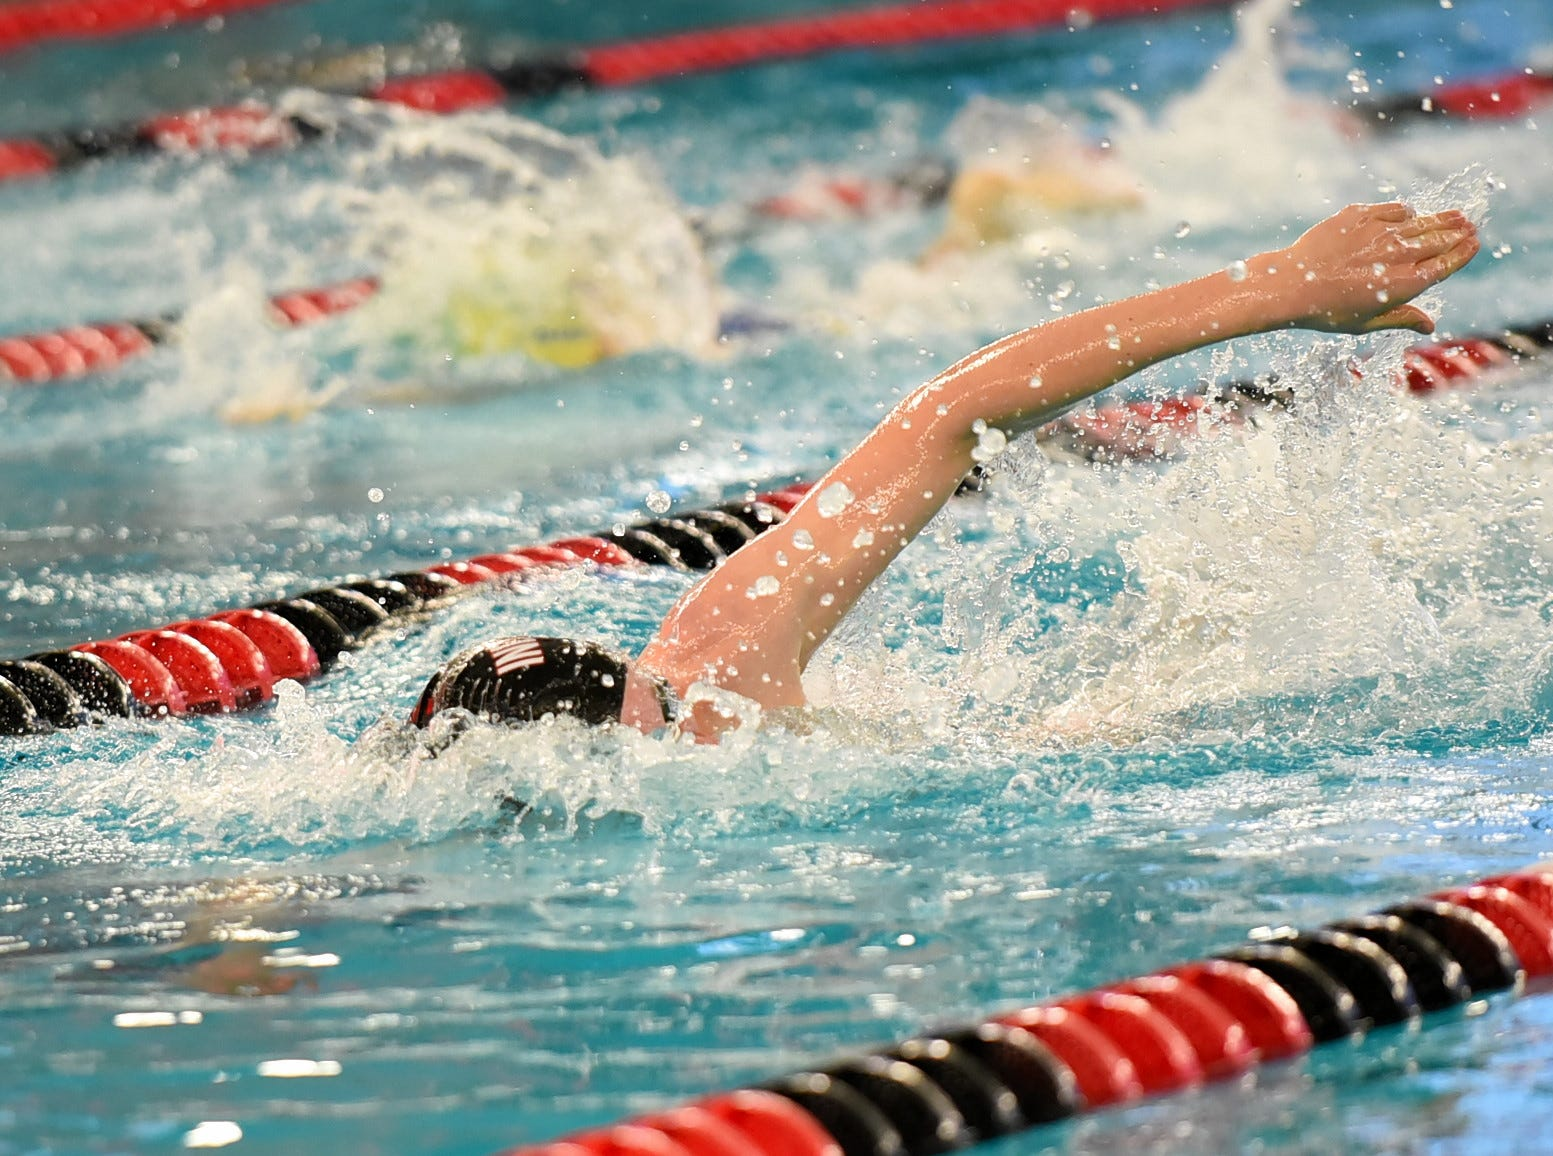 William Taylor of Indian Hill heads to the wall in the final heat of the boys 200 freestyle at the Southwest Ohio Swimming and Diving Classic, January 19, 2019.